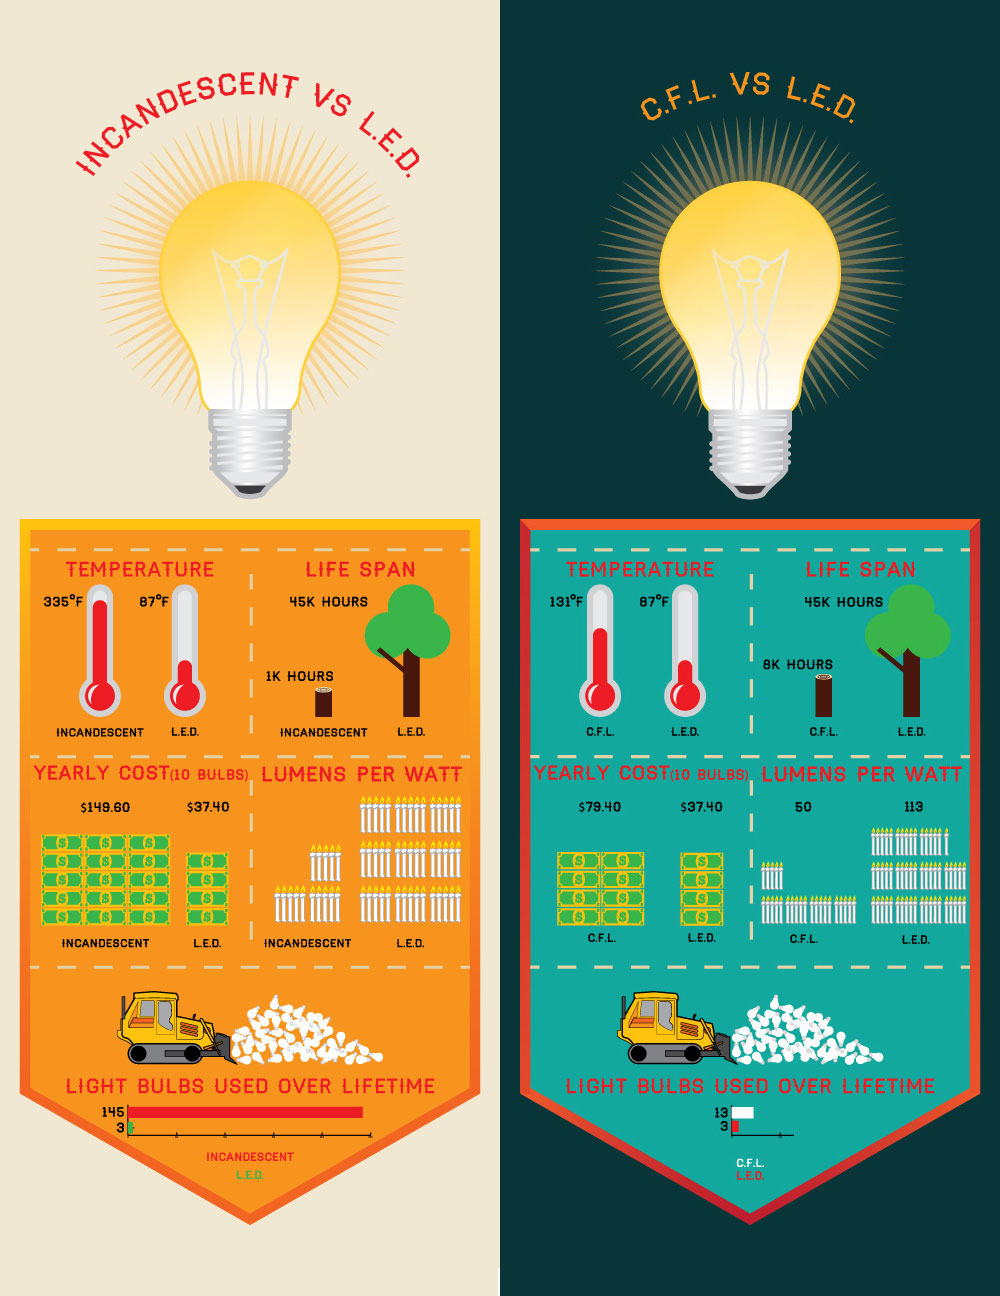 Led Vs Other Bulbs Led Specialists Ltd